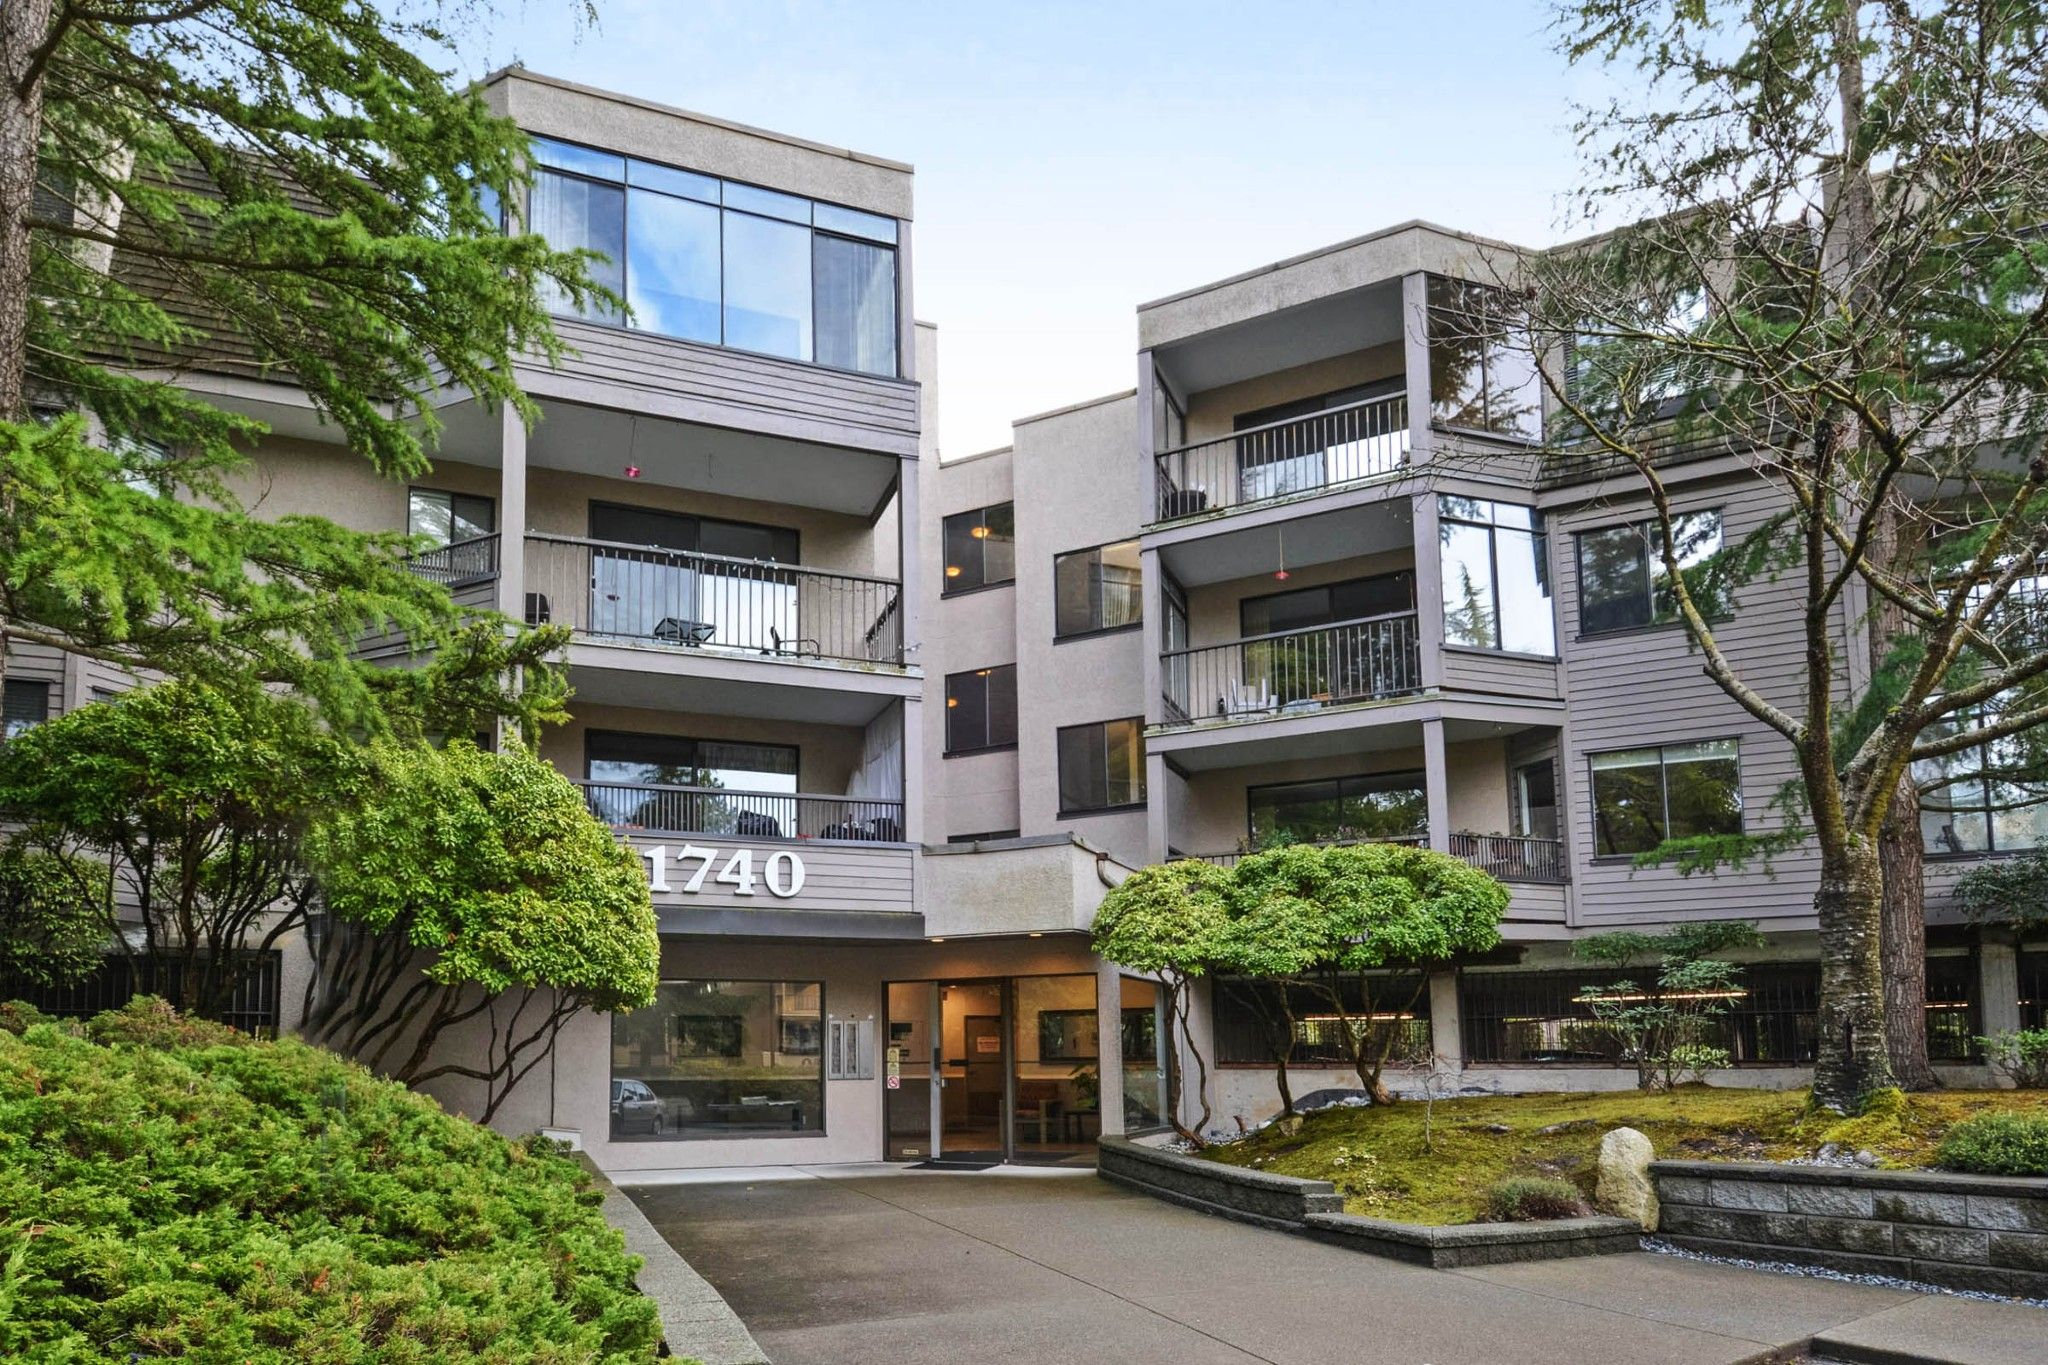 """Main Photo: 208 1740 SOUTHMERE Crescent in Surrey: Sunnyside Park Surrey Condo for sale in """"CAPSTAN WAY"""" (South Surrey White Rock)  : MLS®# R2234787"""